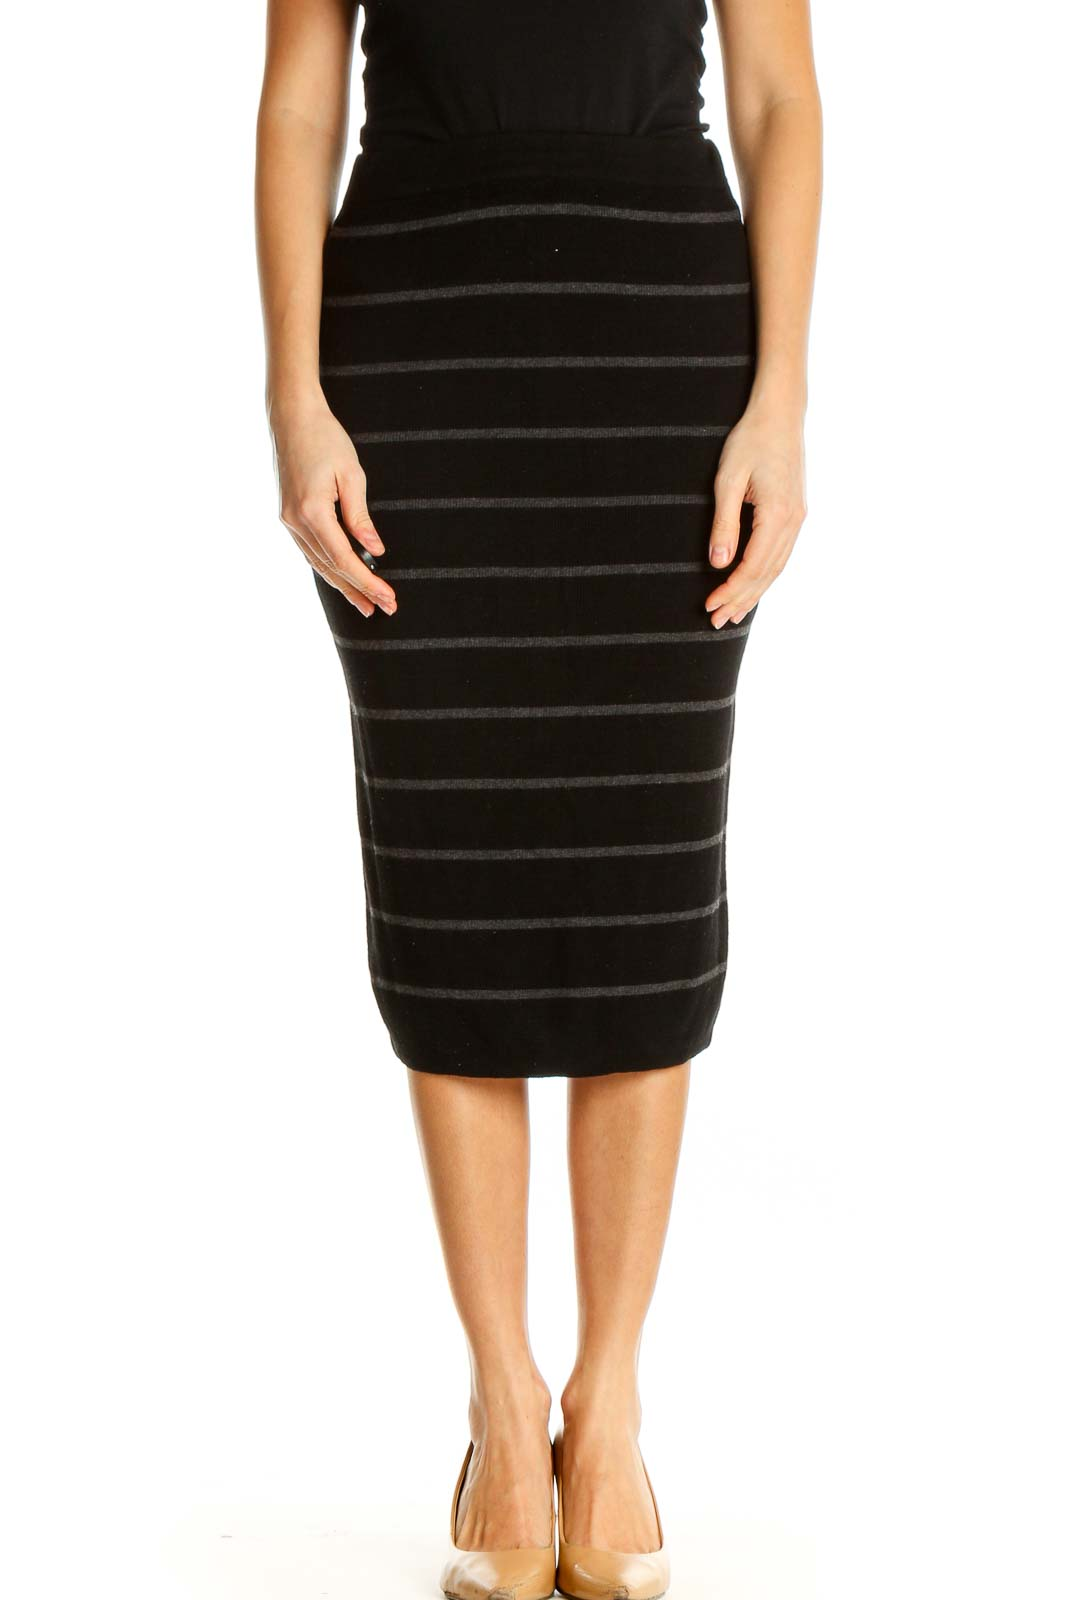 Black Striped Chic Skirt Front